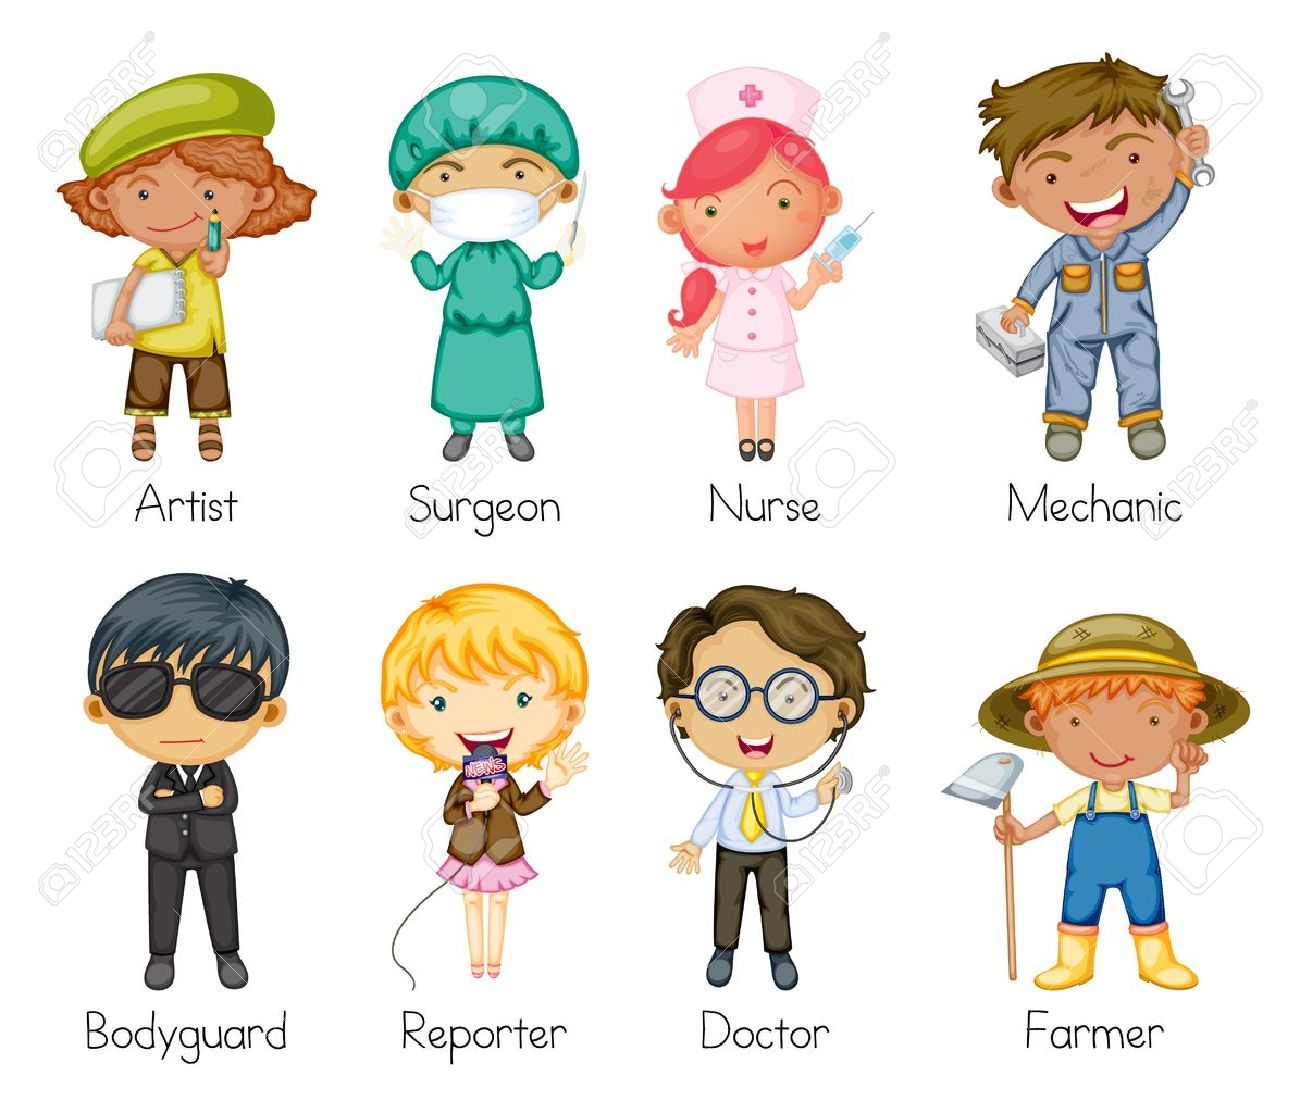 illustration of a jobs and professions royalty free cliparts rh 123rf com jobs clipart free jobs clipart free